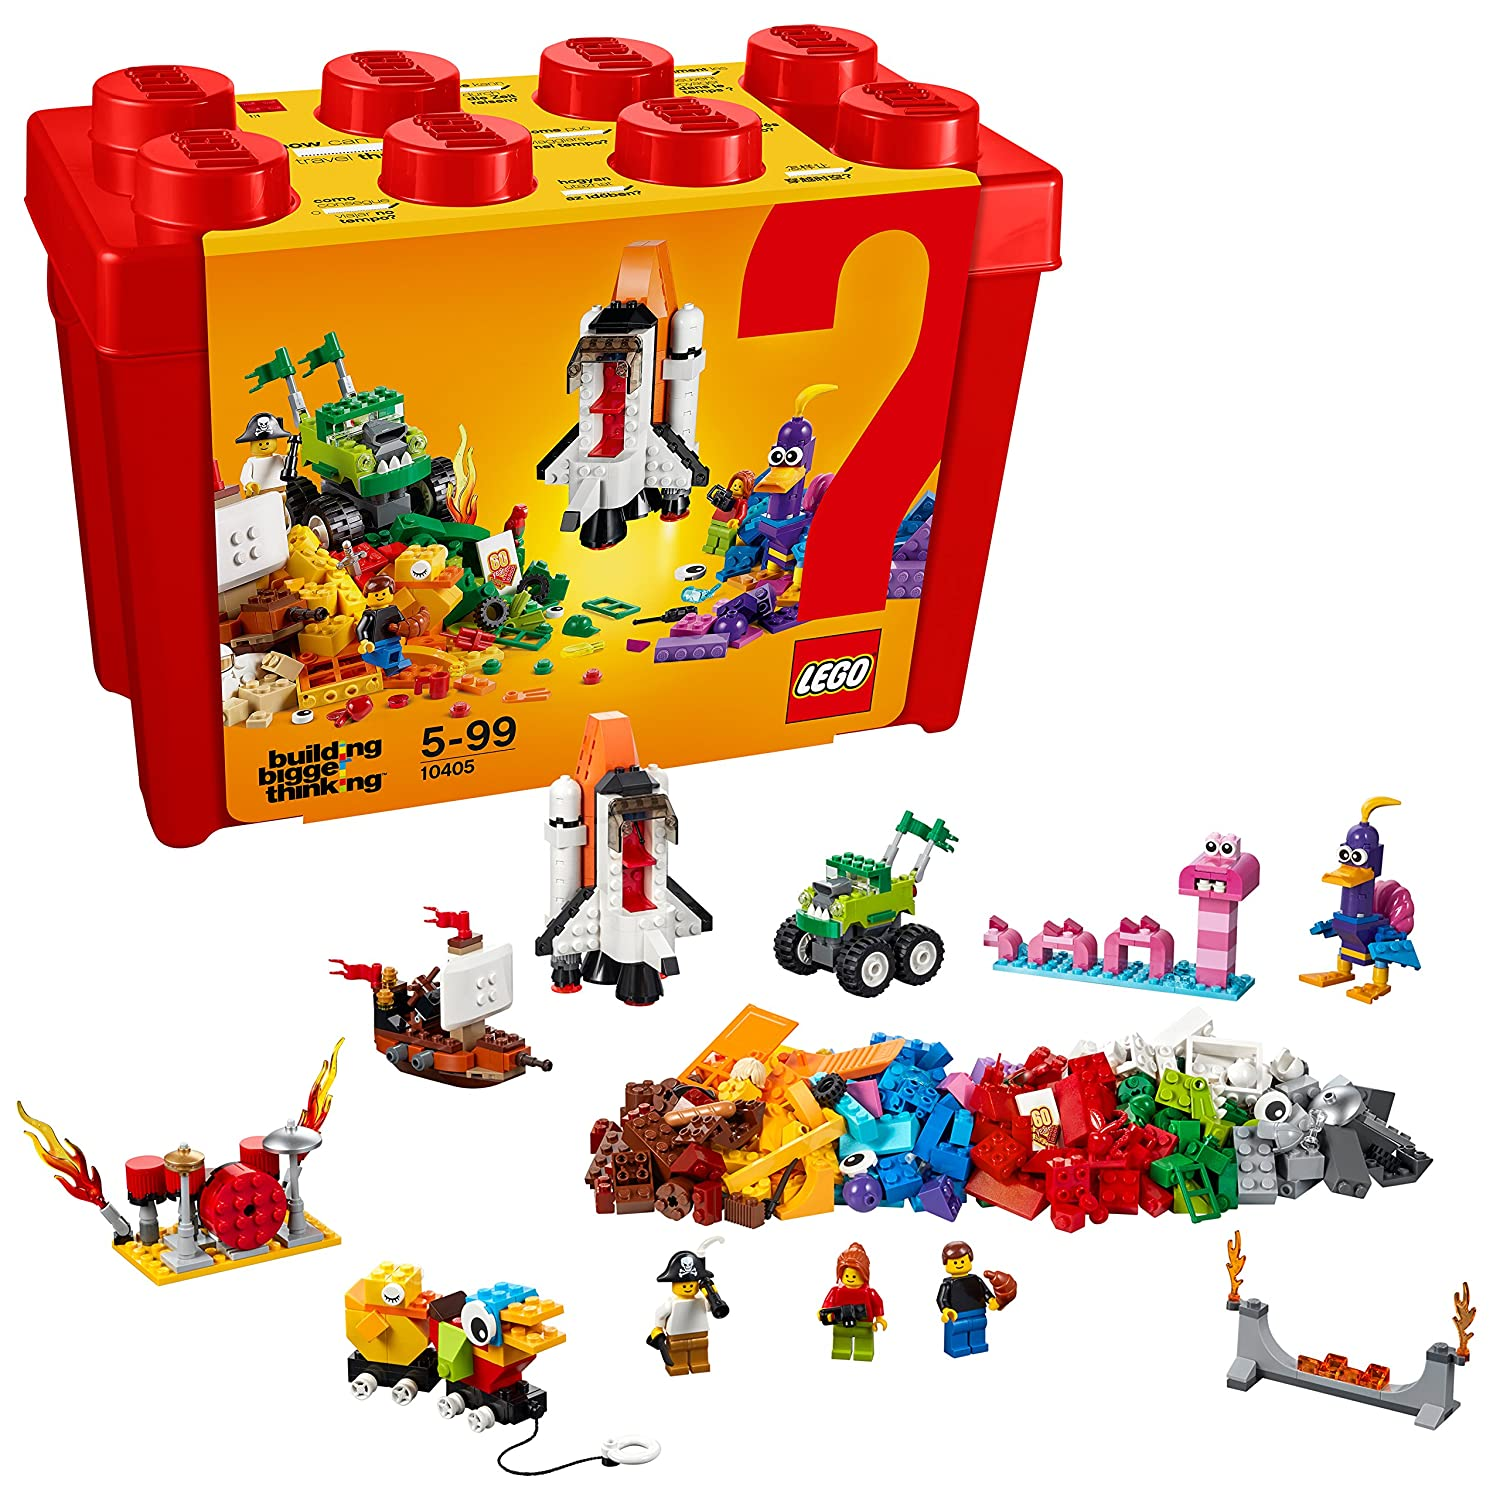 Buy Lego 10405 Mission To Mars Online At Low Prices In India Amazon